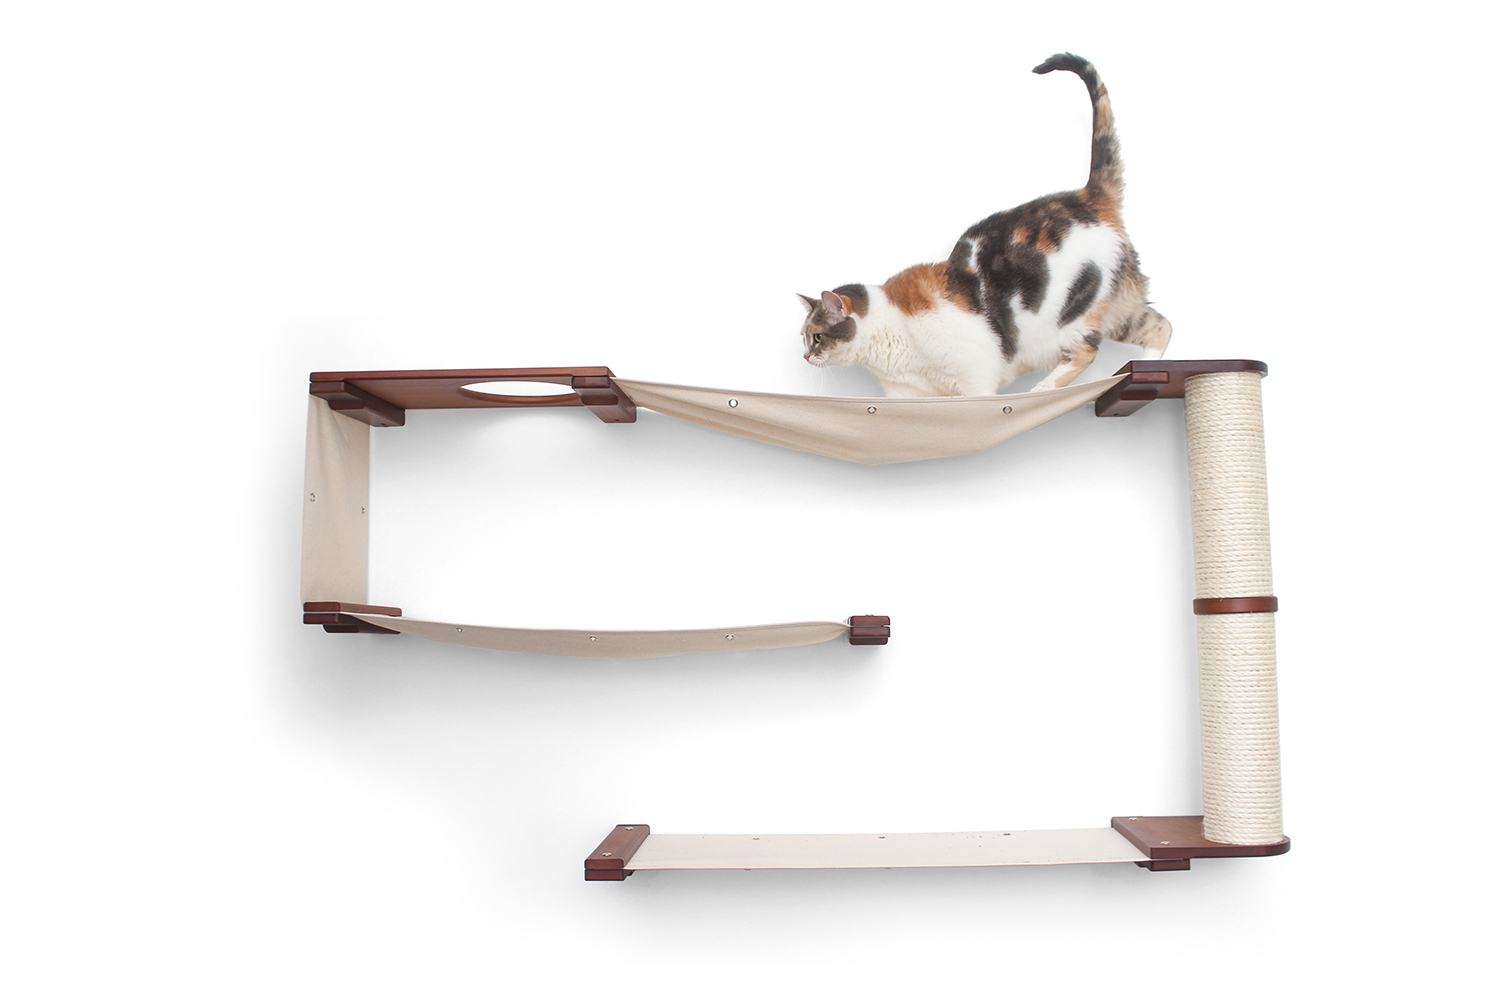 This photo displays a cat on the Deluxe Cat Maze. This Deluxe Cat Maze is in English Chestnut, a dark brown stain, with Natural fabric, a light tan color.